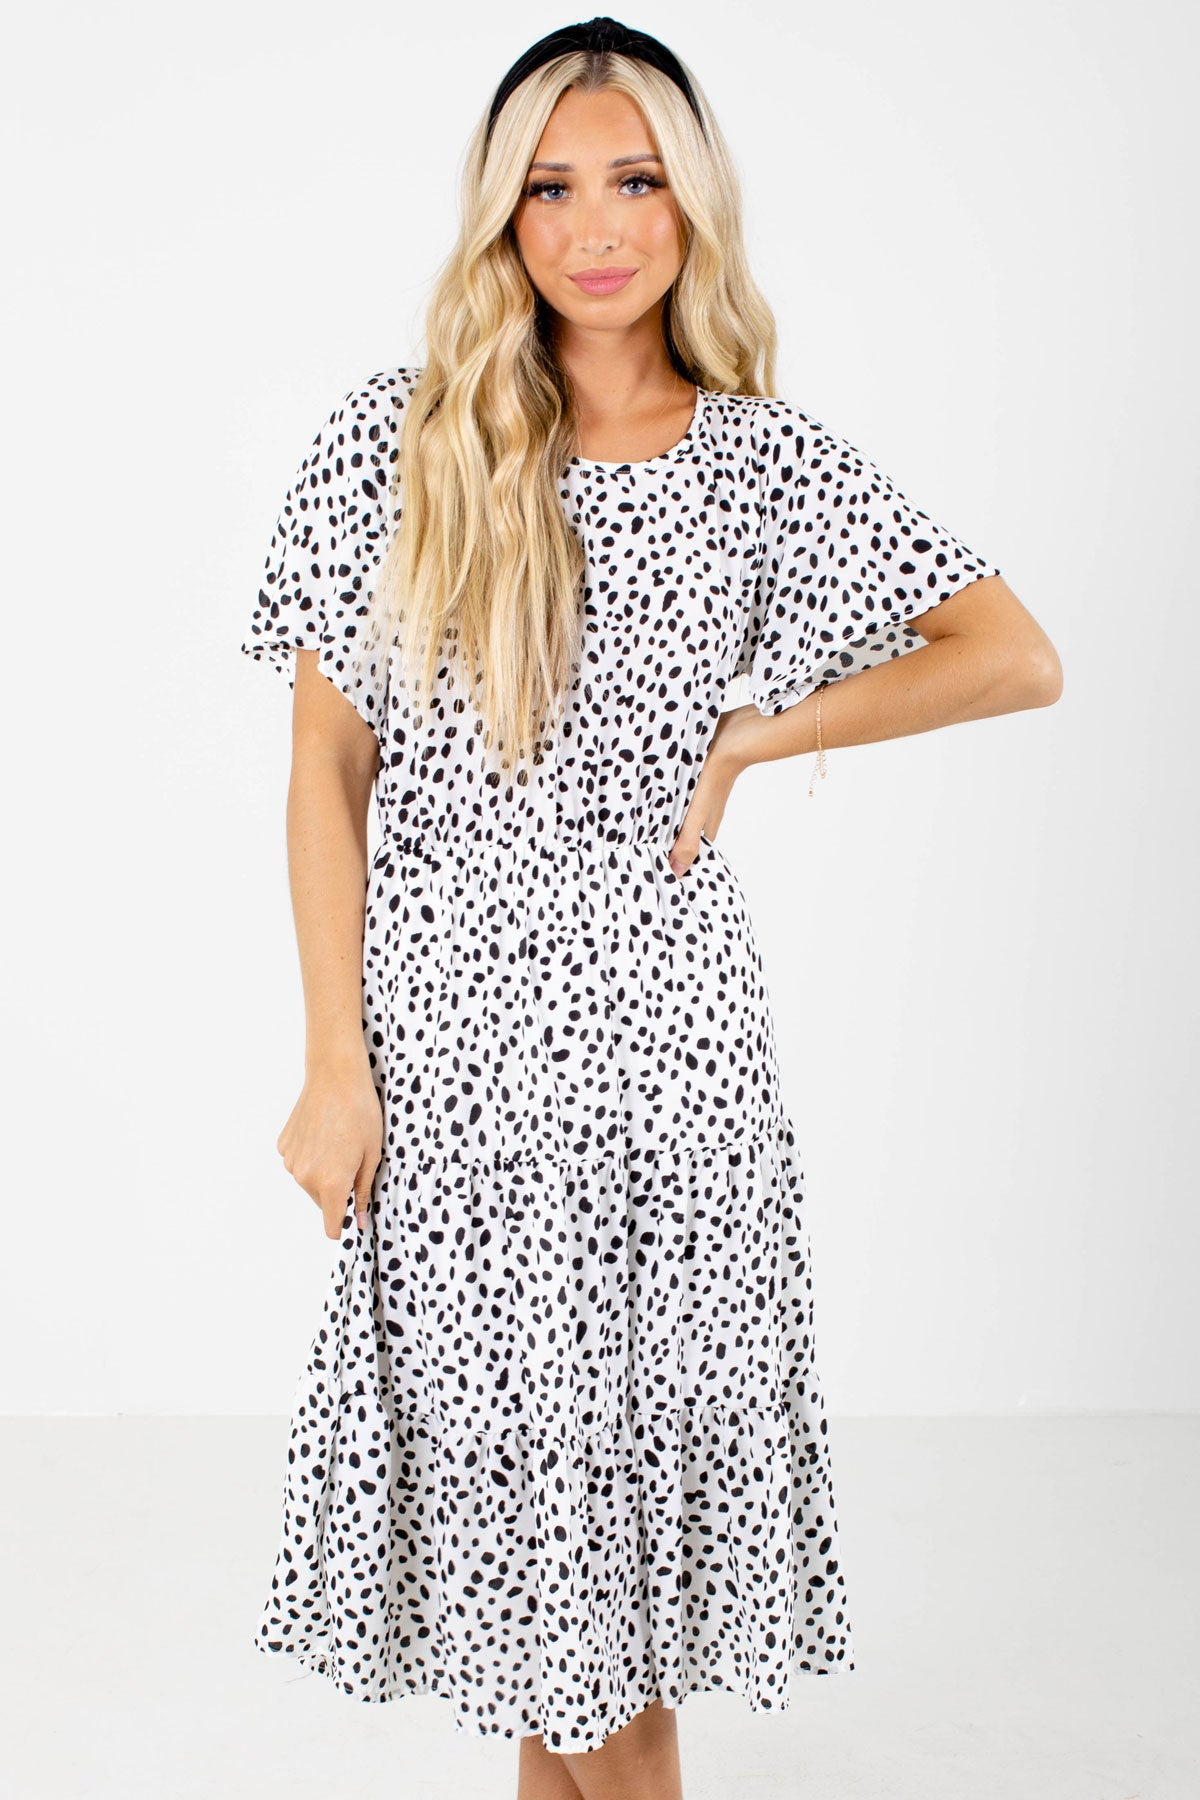 White and Black Polka Dot Patterned Boutqiue Midi Dresses for Women